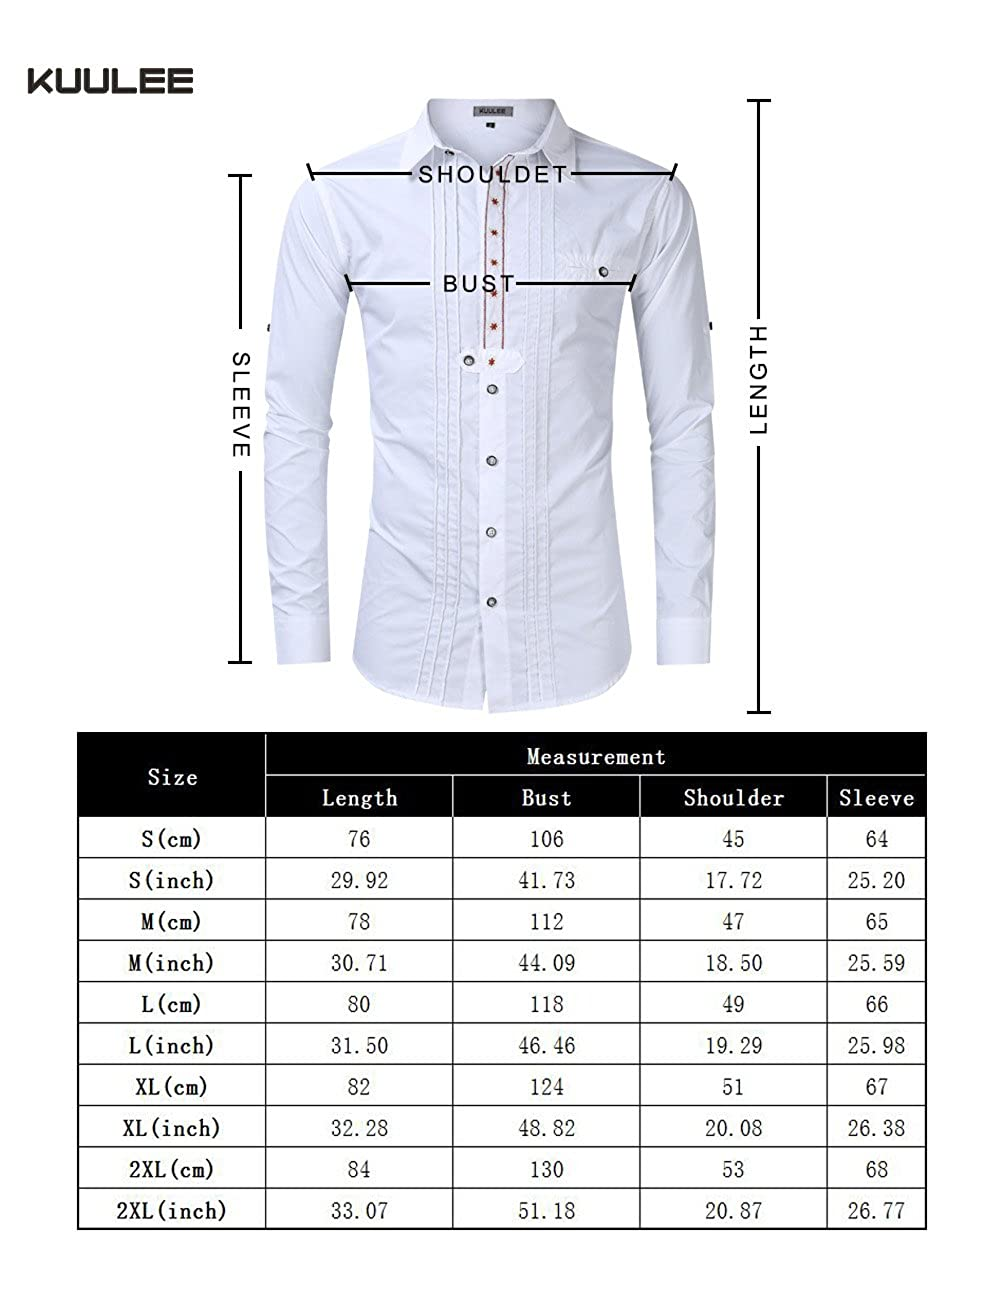 Kuulee Men/'s Slim Fit Embroidered Design Western Shirt Costume Long Sleeve Button Down Shirt